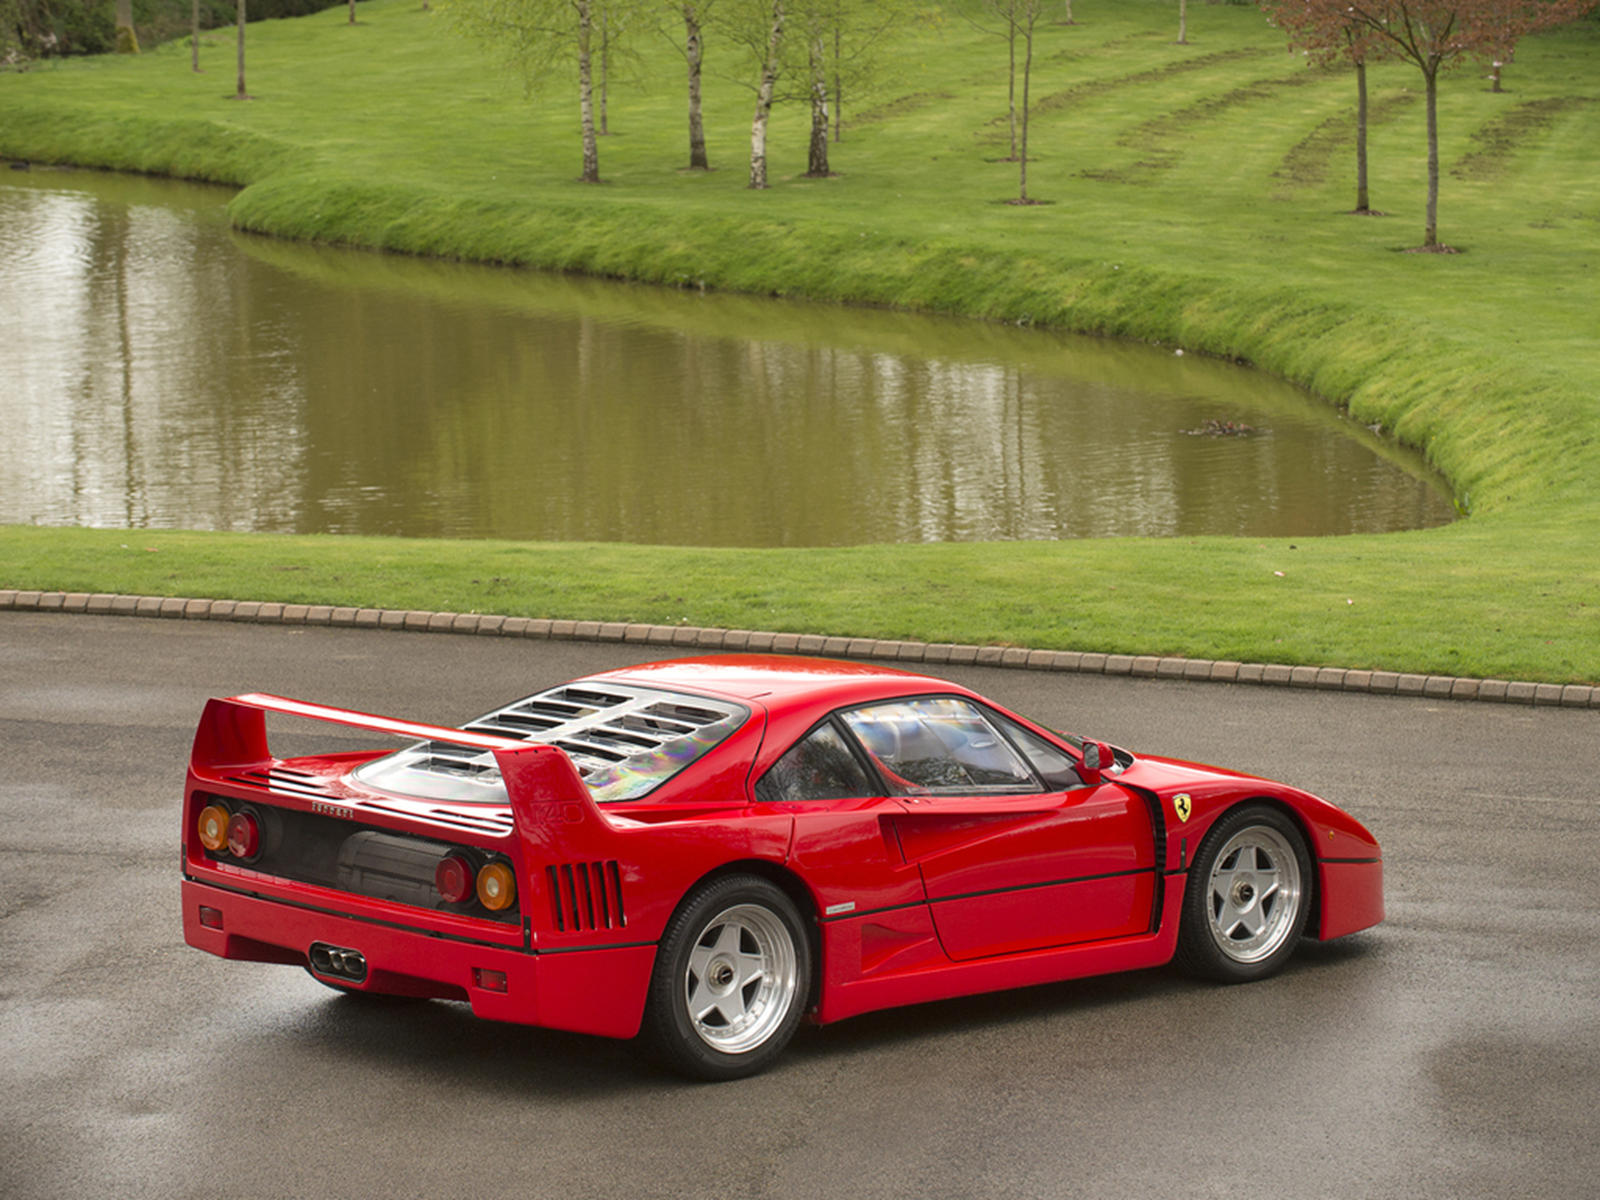 This Ultra Rare Ferrari F40 Prototype Is For Sale News Supercars Net